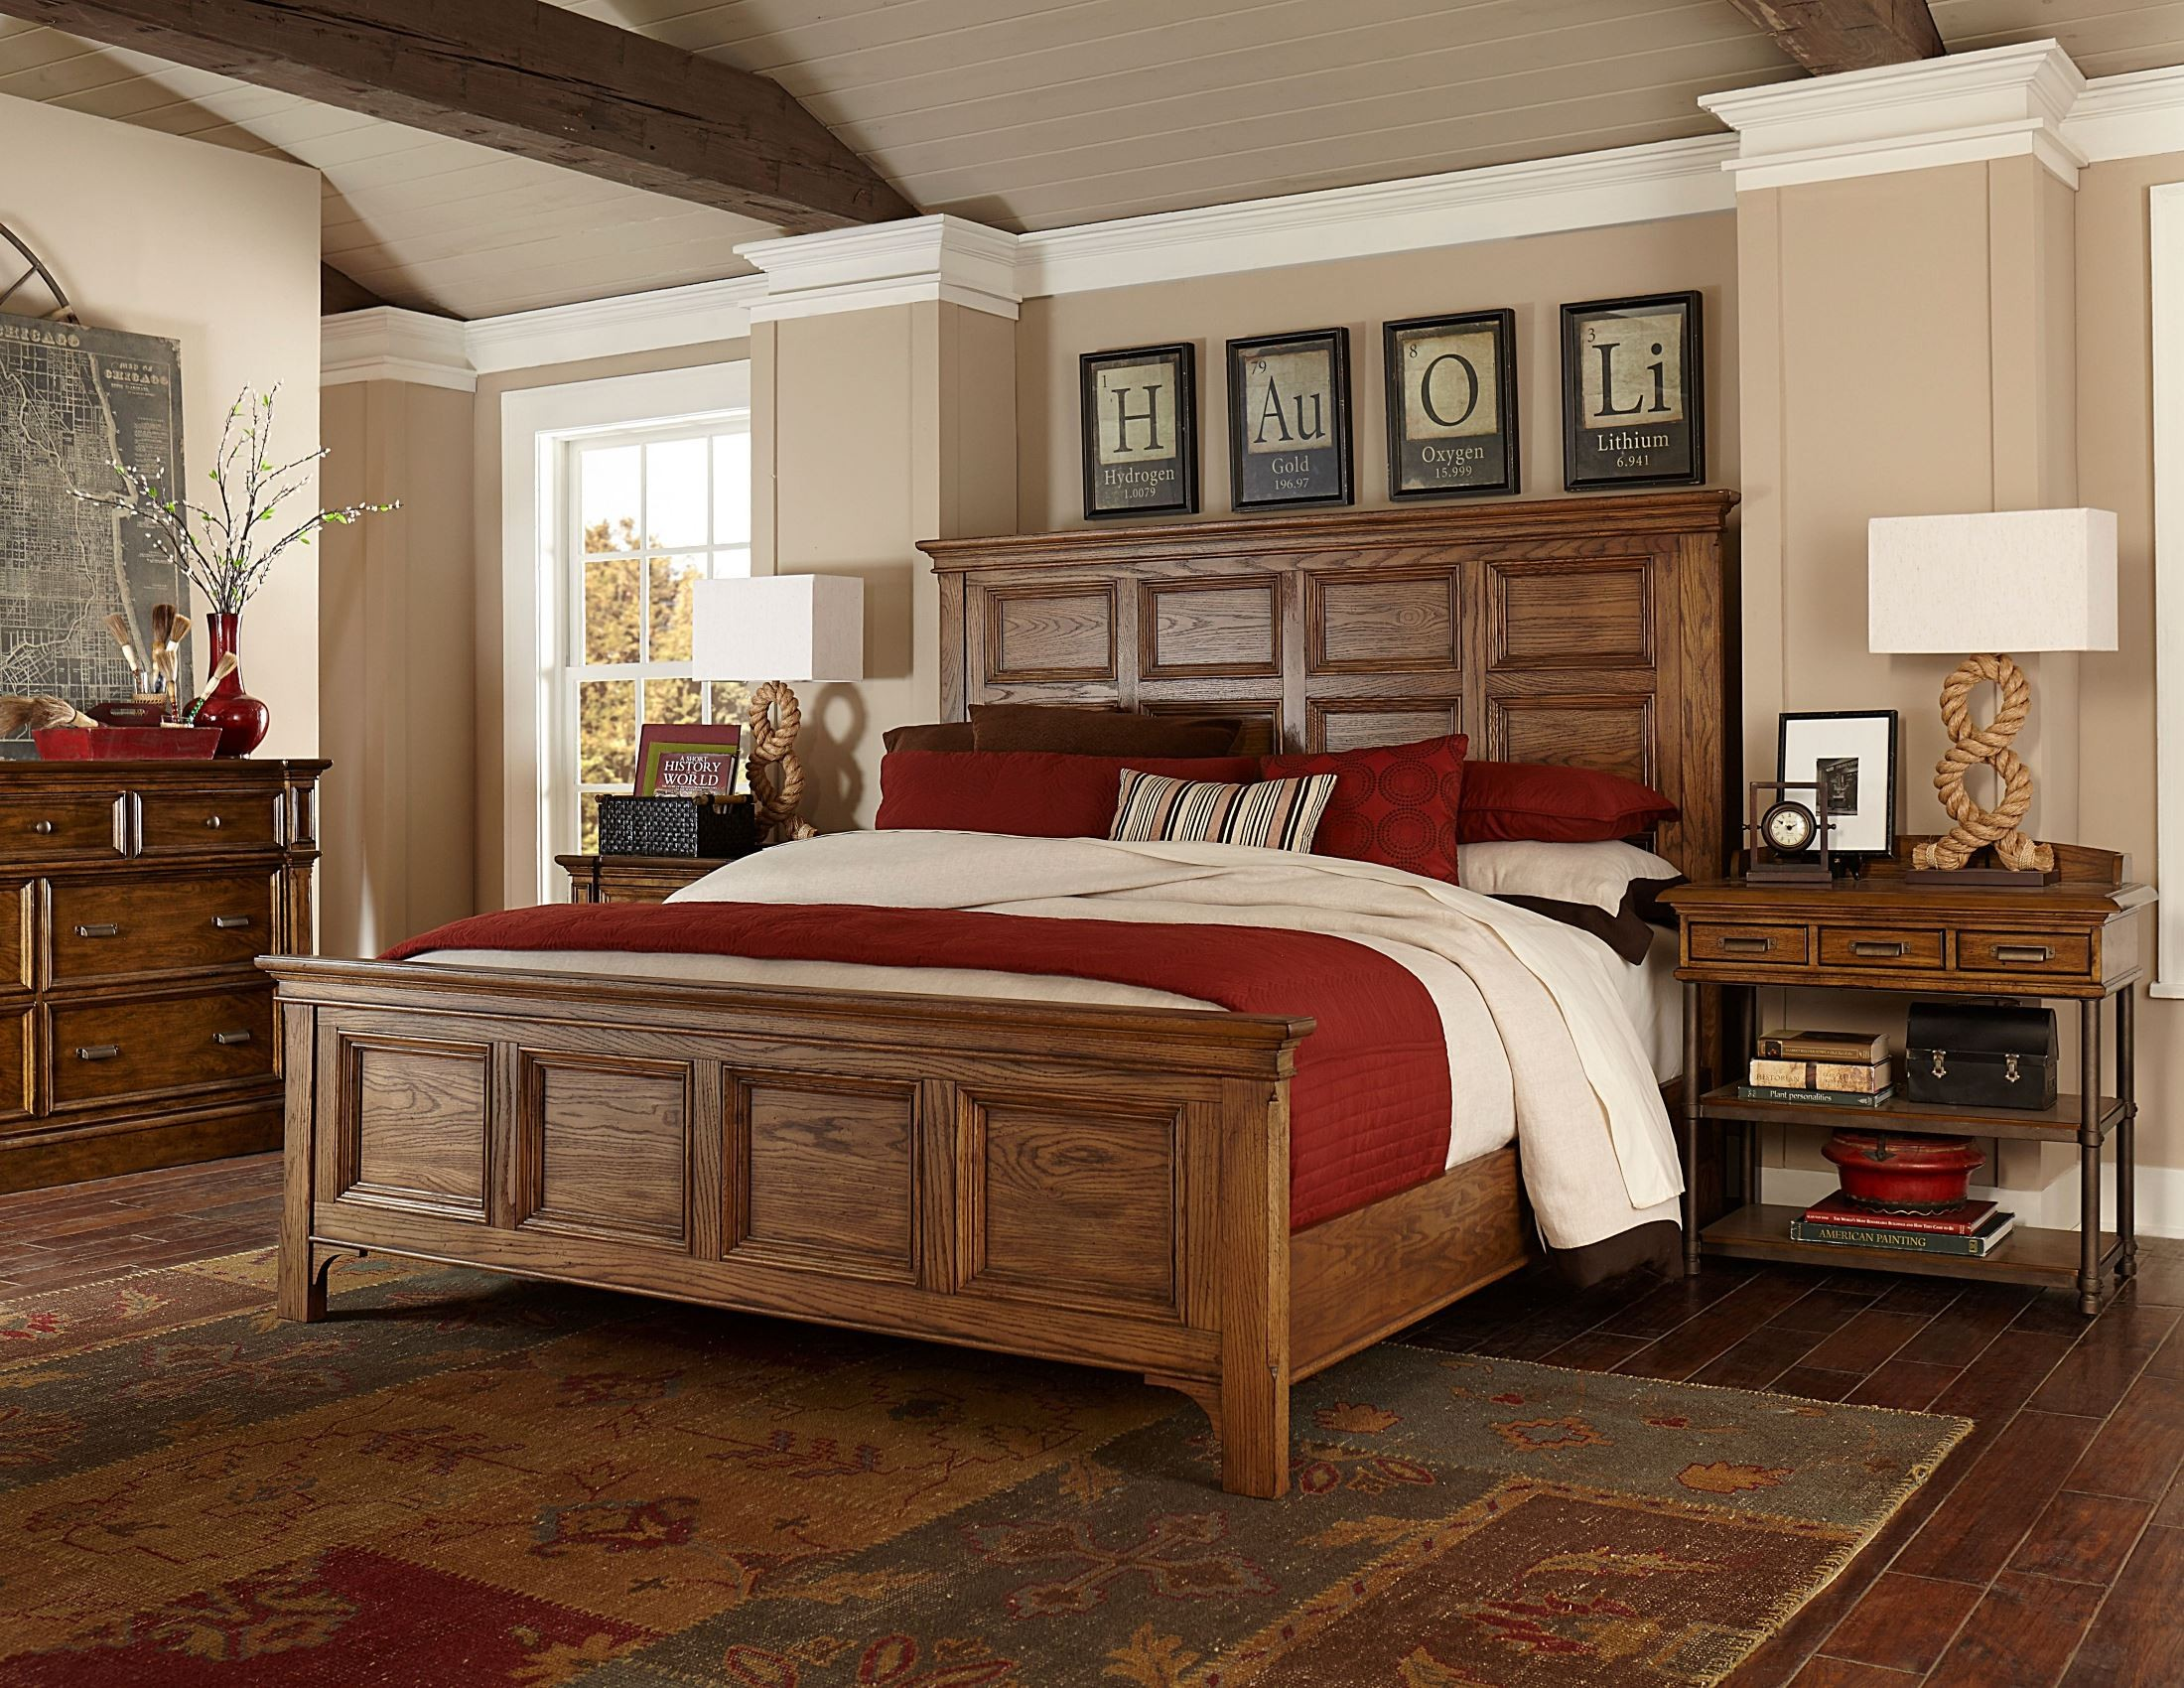 New Vintage Brown Panel Bedroom Set from Broyhill 4808